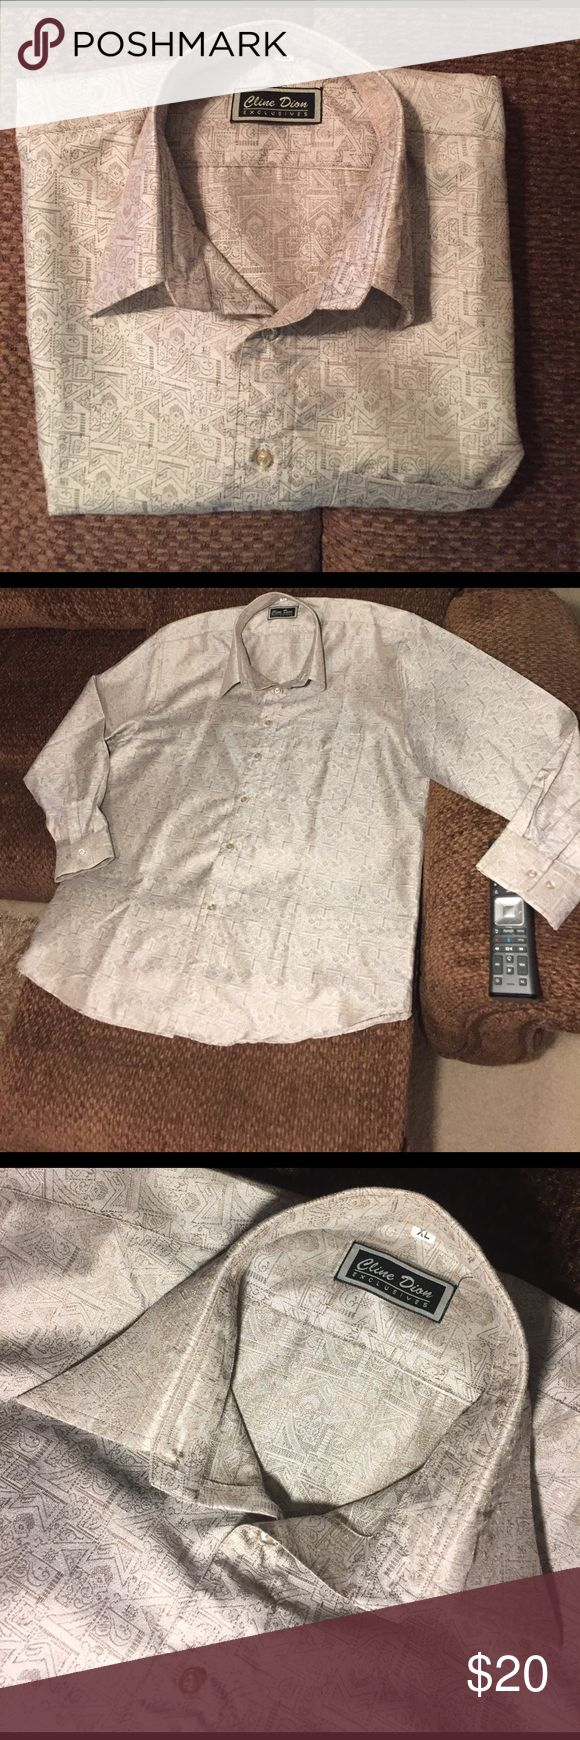 Men's Dress Shirt NWOT Never worn. A very neutral, classy shirt. Cline Dion Shirts Dress Shirts